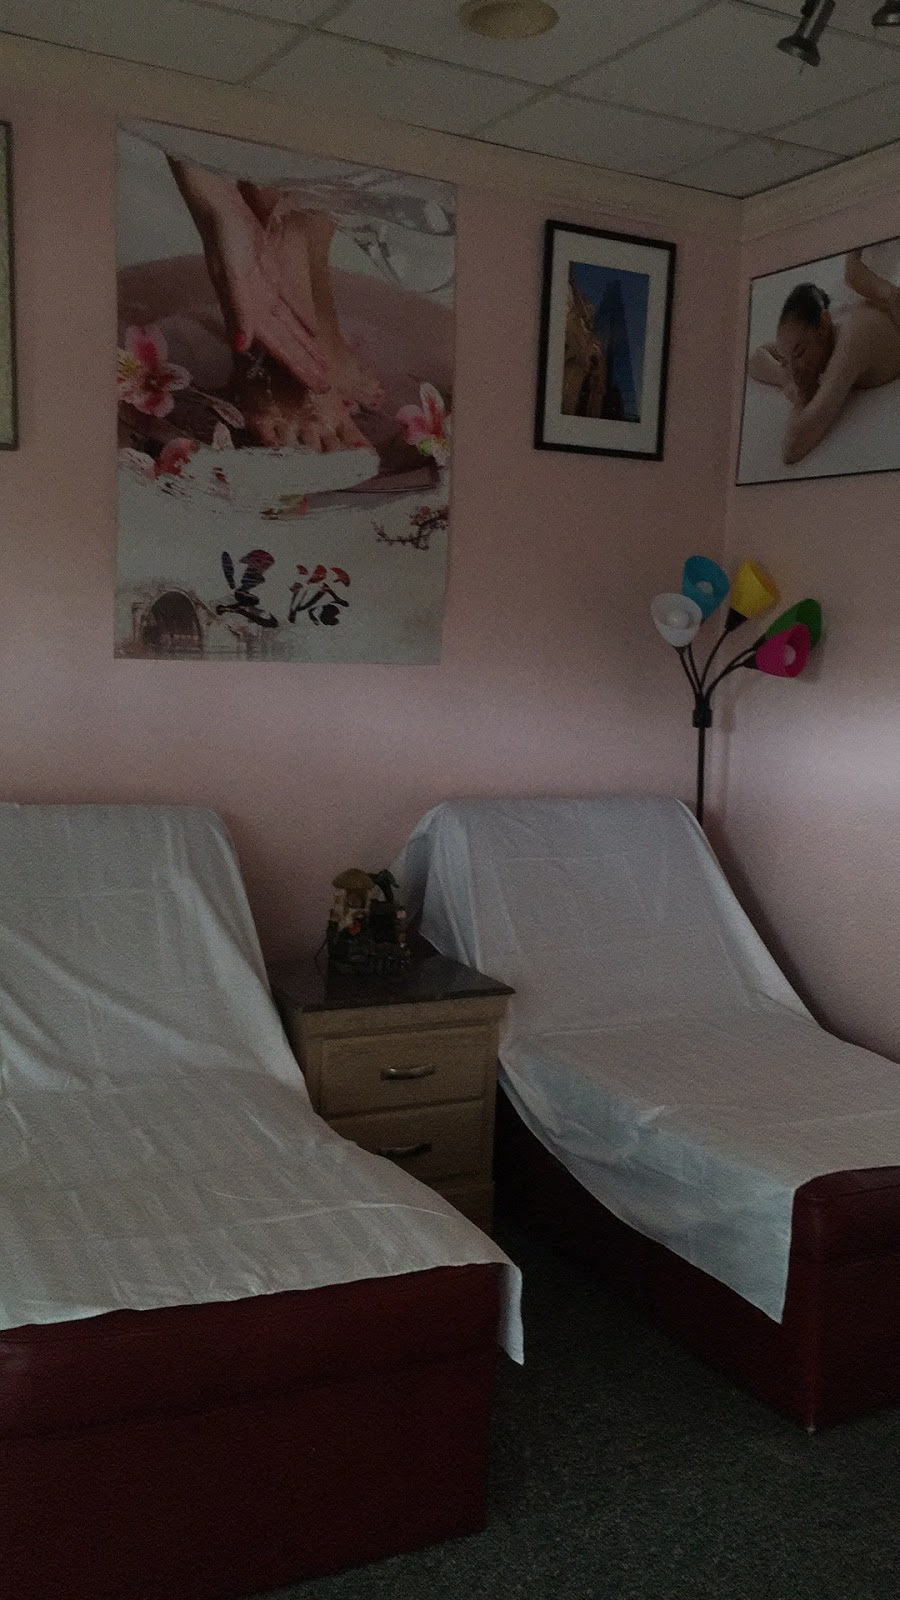 Sunny Massage SPA - spa  | Photo 10 of 10 | Address: 522 Nantasket Ave, Hull, MA 02045, USA | Phone: (781) 773-1498